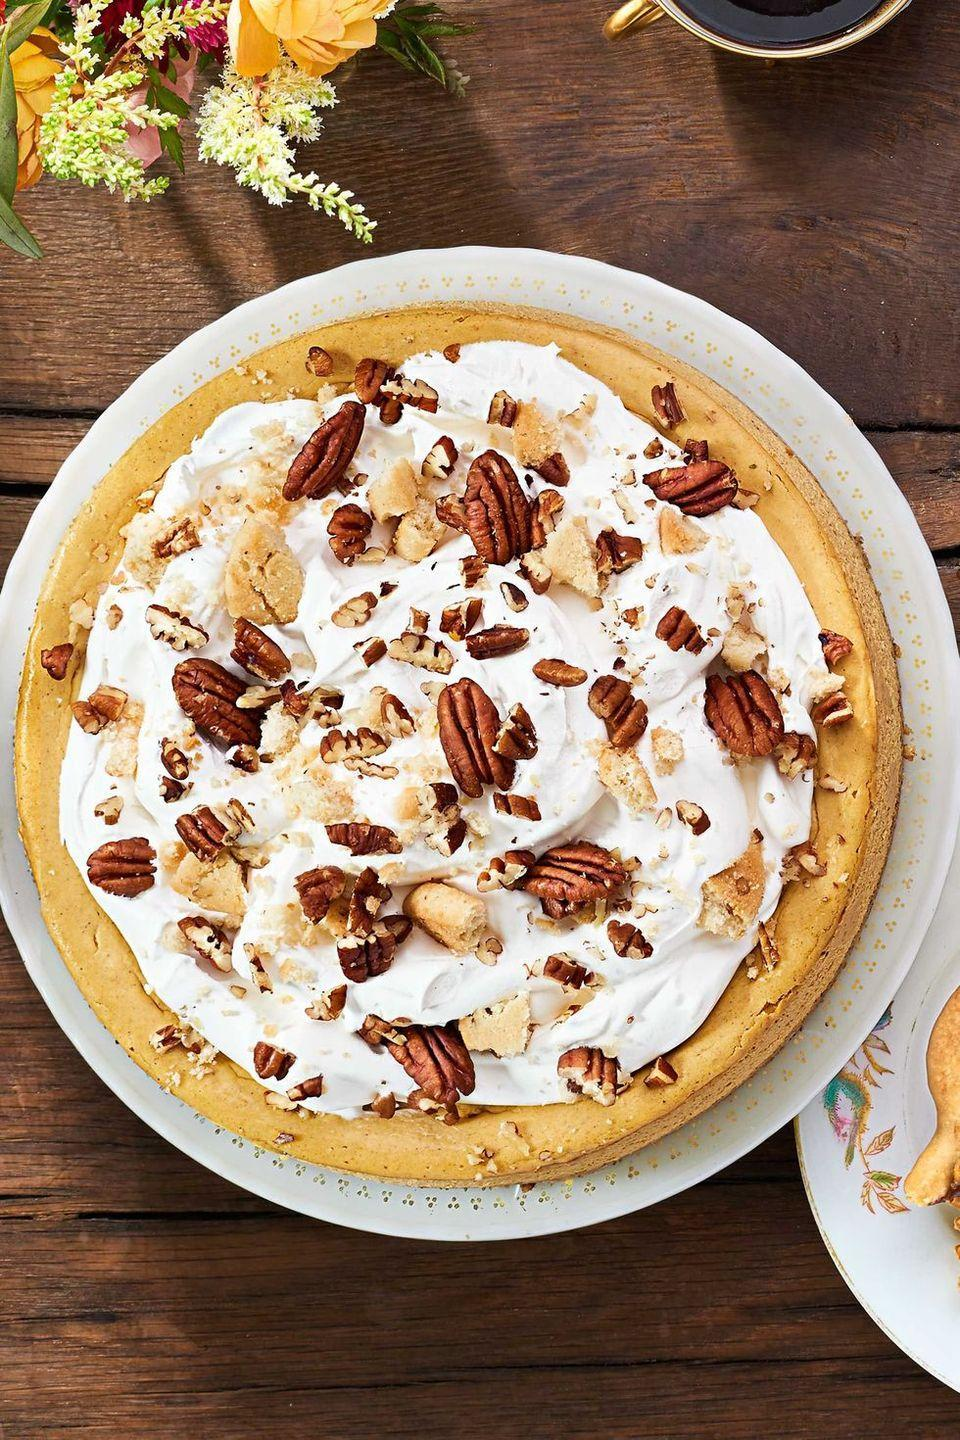 "<p>When it comes to dessert, there should be no compromises. That's why pumpkin cheesecakes exist. This showstopper is garnished with homemade pumpkin spice cookies, too. So yeah, safe to say everyone's happy.</p><p><em><a href=""https://www.countryliving.com/food-drinks/recipes/a40037/pumpkin-cheesecake-with-cookie-crust-recipe/"" rel=""nofollow noopener"" target=""_blank"" data-ylk=""slk:Get the recipe from Country Living »"" class=""link rapid-noclick-resp"">Get the recipe from Country Living »</a></em></p><p><strong>RELATED: </strong><a href=""https://www.goodhousekeeping.com/food-recipes/dessert/g4454/pumpkin-cheesecake-recipes/"" rel=""nofollow noopener"" target=""_blank"" data-ylk=""slk:22 Easy Pumpkin Cheesecake Recipes to Make This Fall"" class=""link rapid-noclick-resp"">22 Easy Pumpkin Cheesecake Recipes to Make This Fall</a><br></p>"